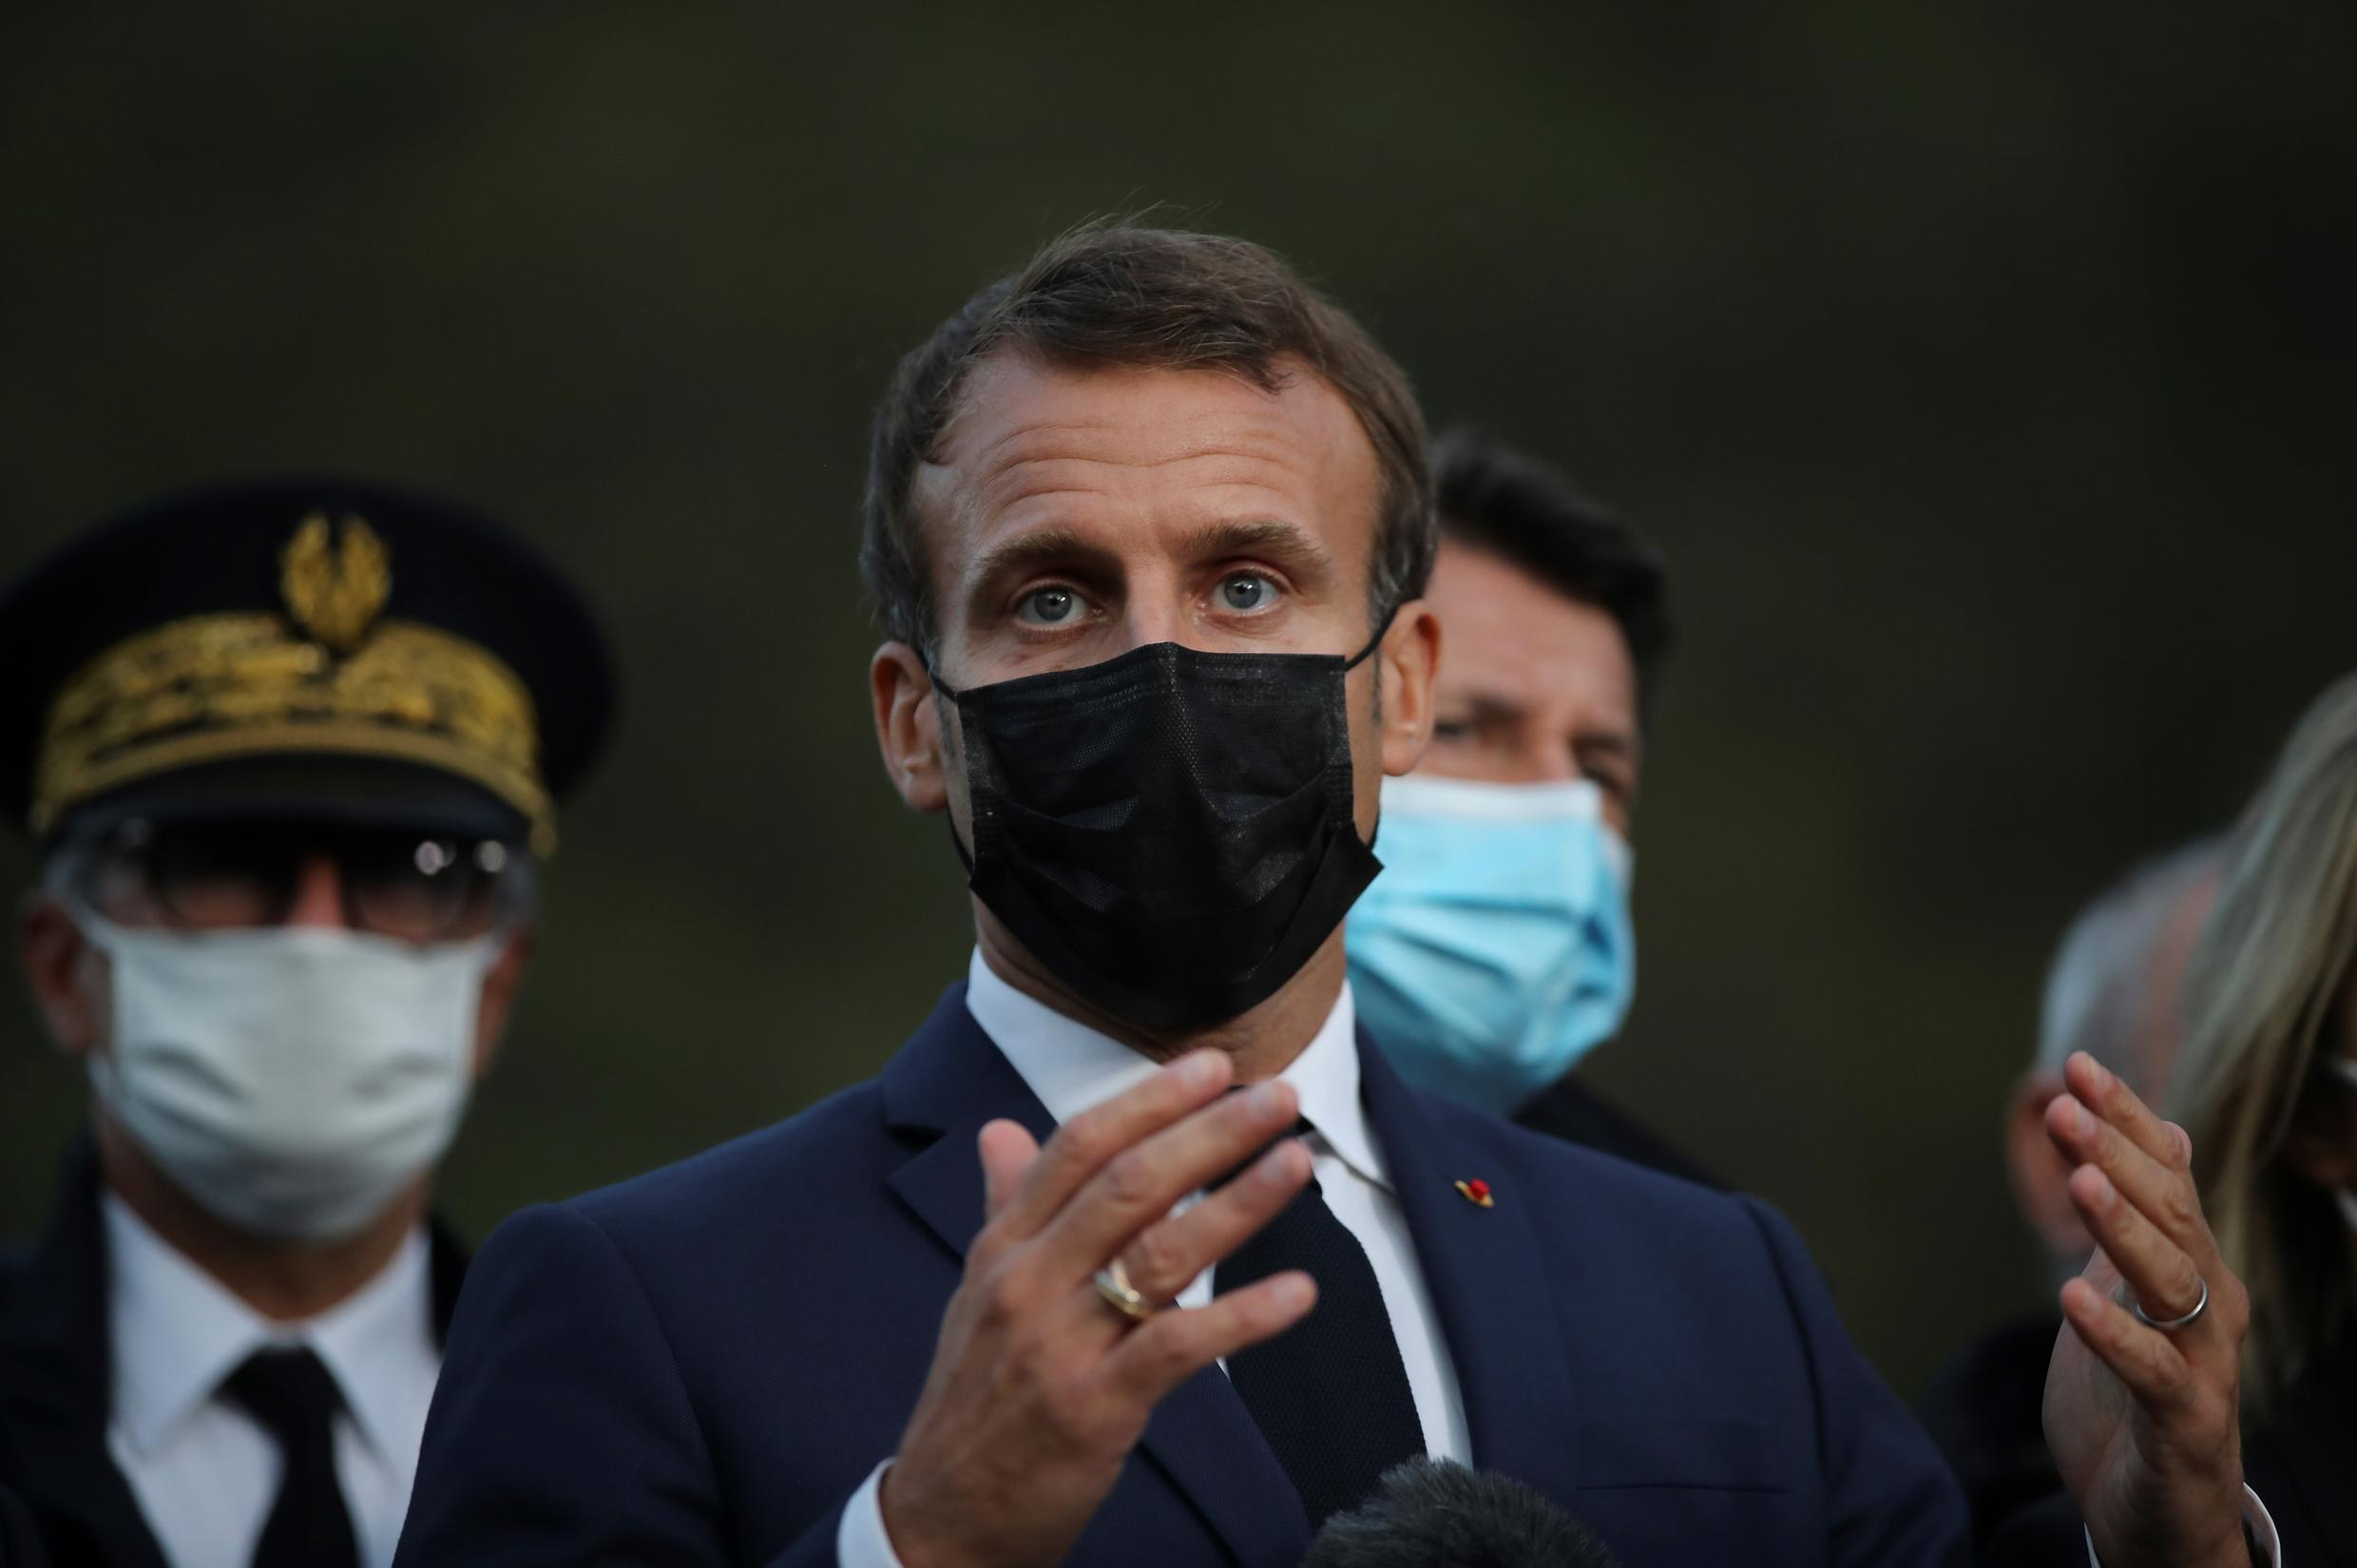 The prospect of Parisian hospitals full of Covid-19 patients puts more pressure on French president Emmanuel Macron (pictured October 7, 2020), who is widely expected to announce tighter restrictions